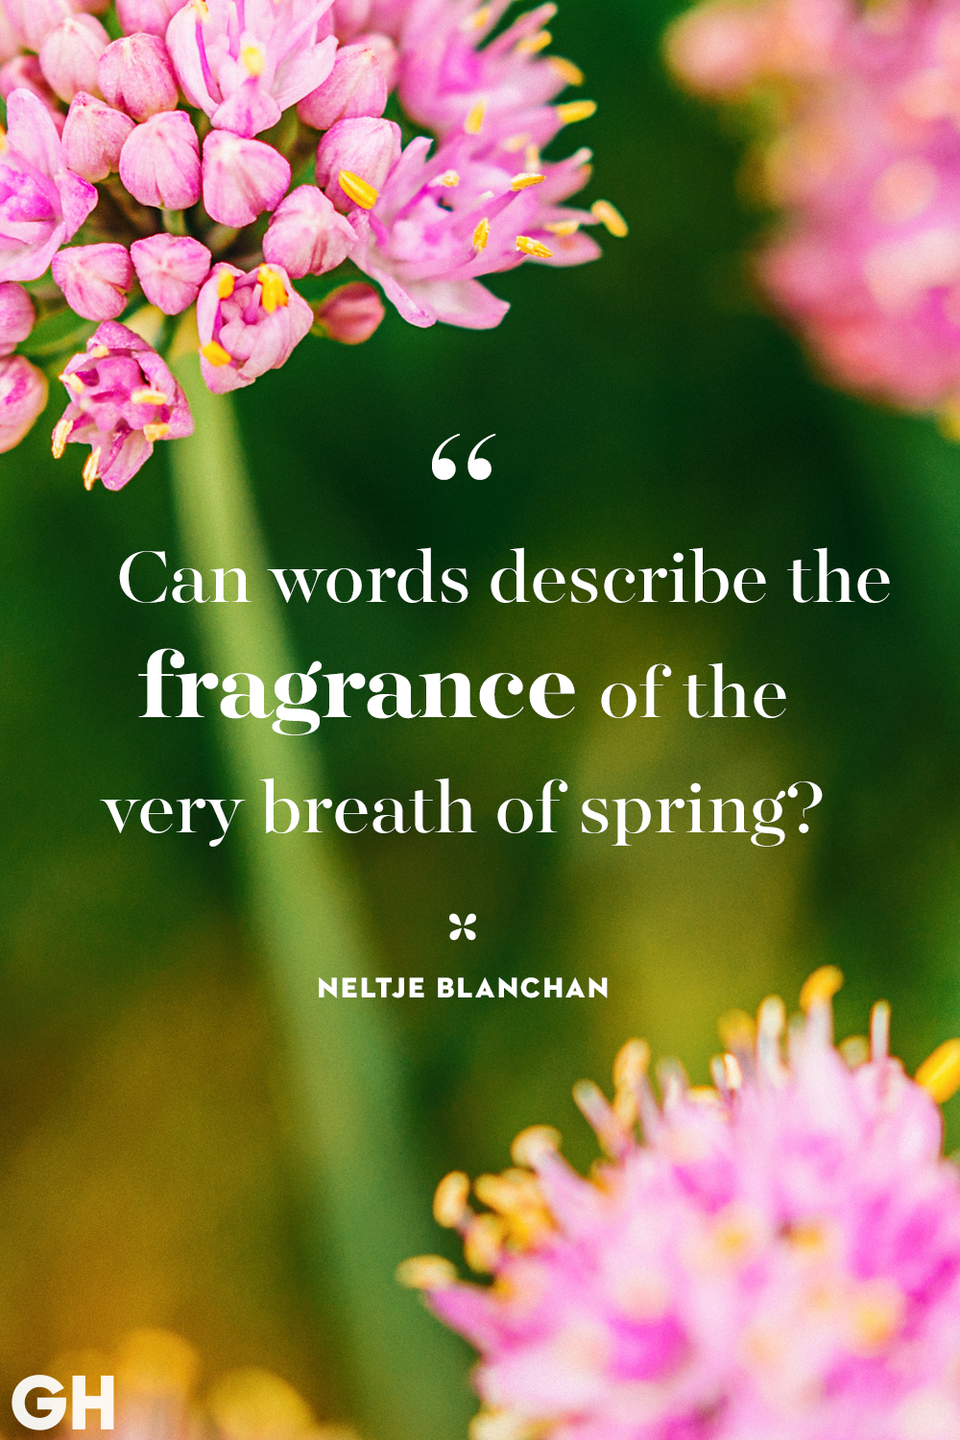 <p>Can words describe the fragrance of the very breath of spring?</p>